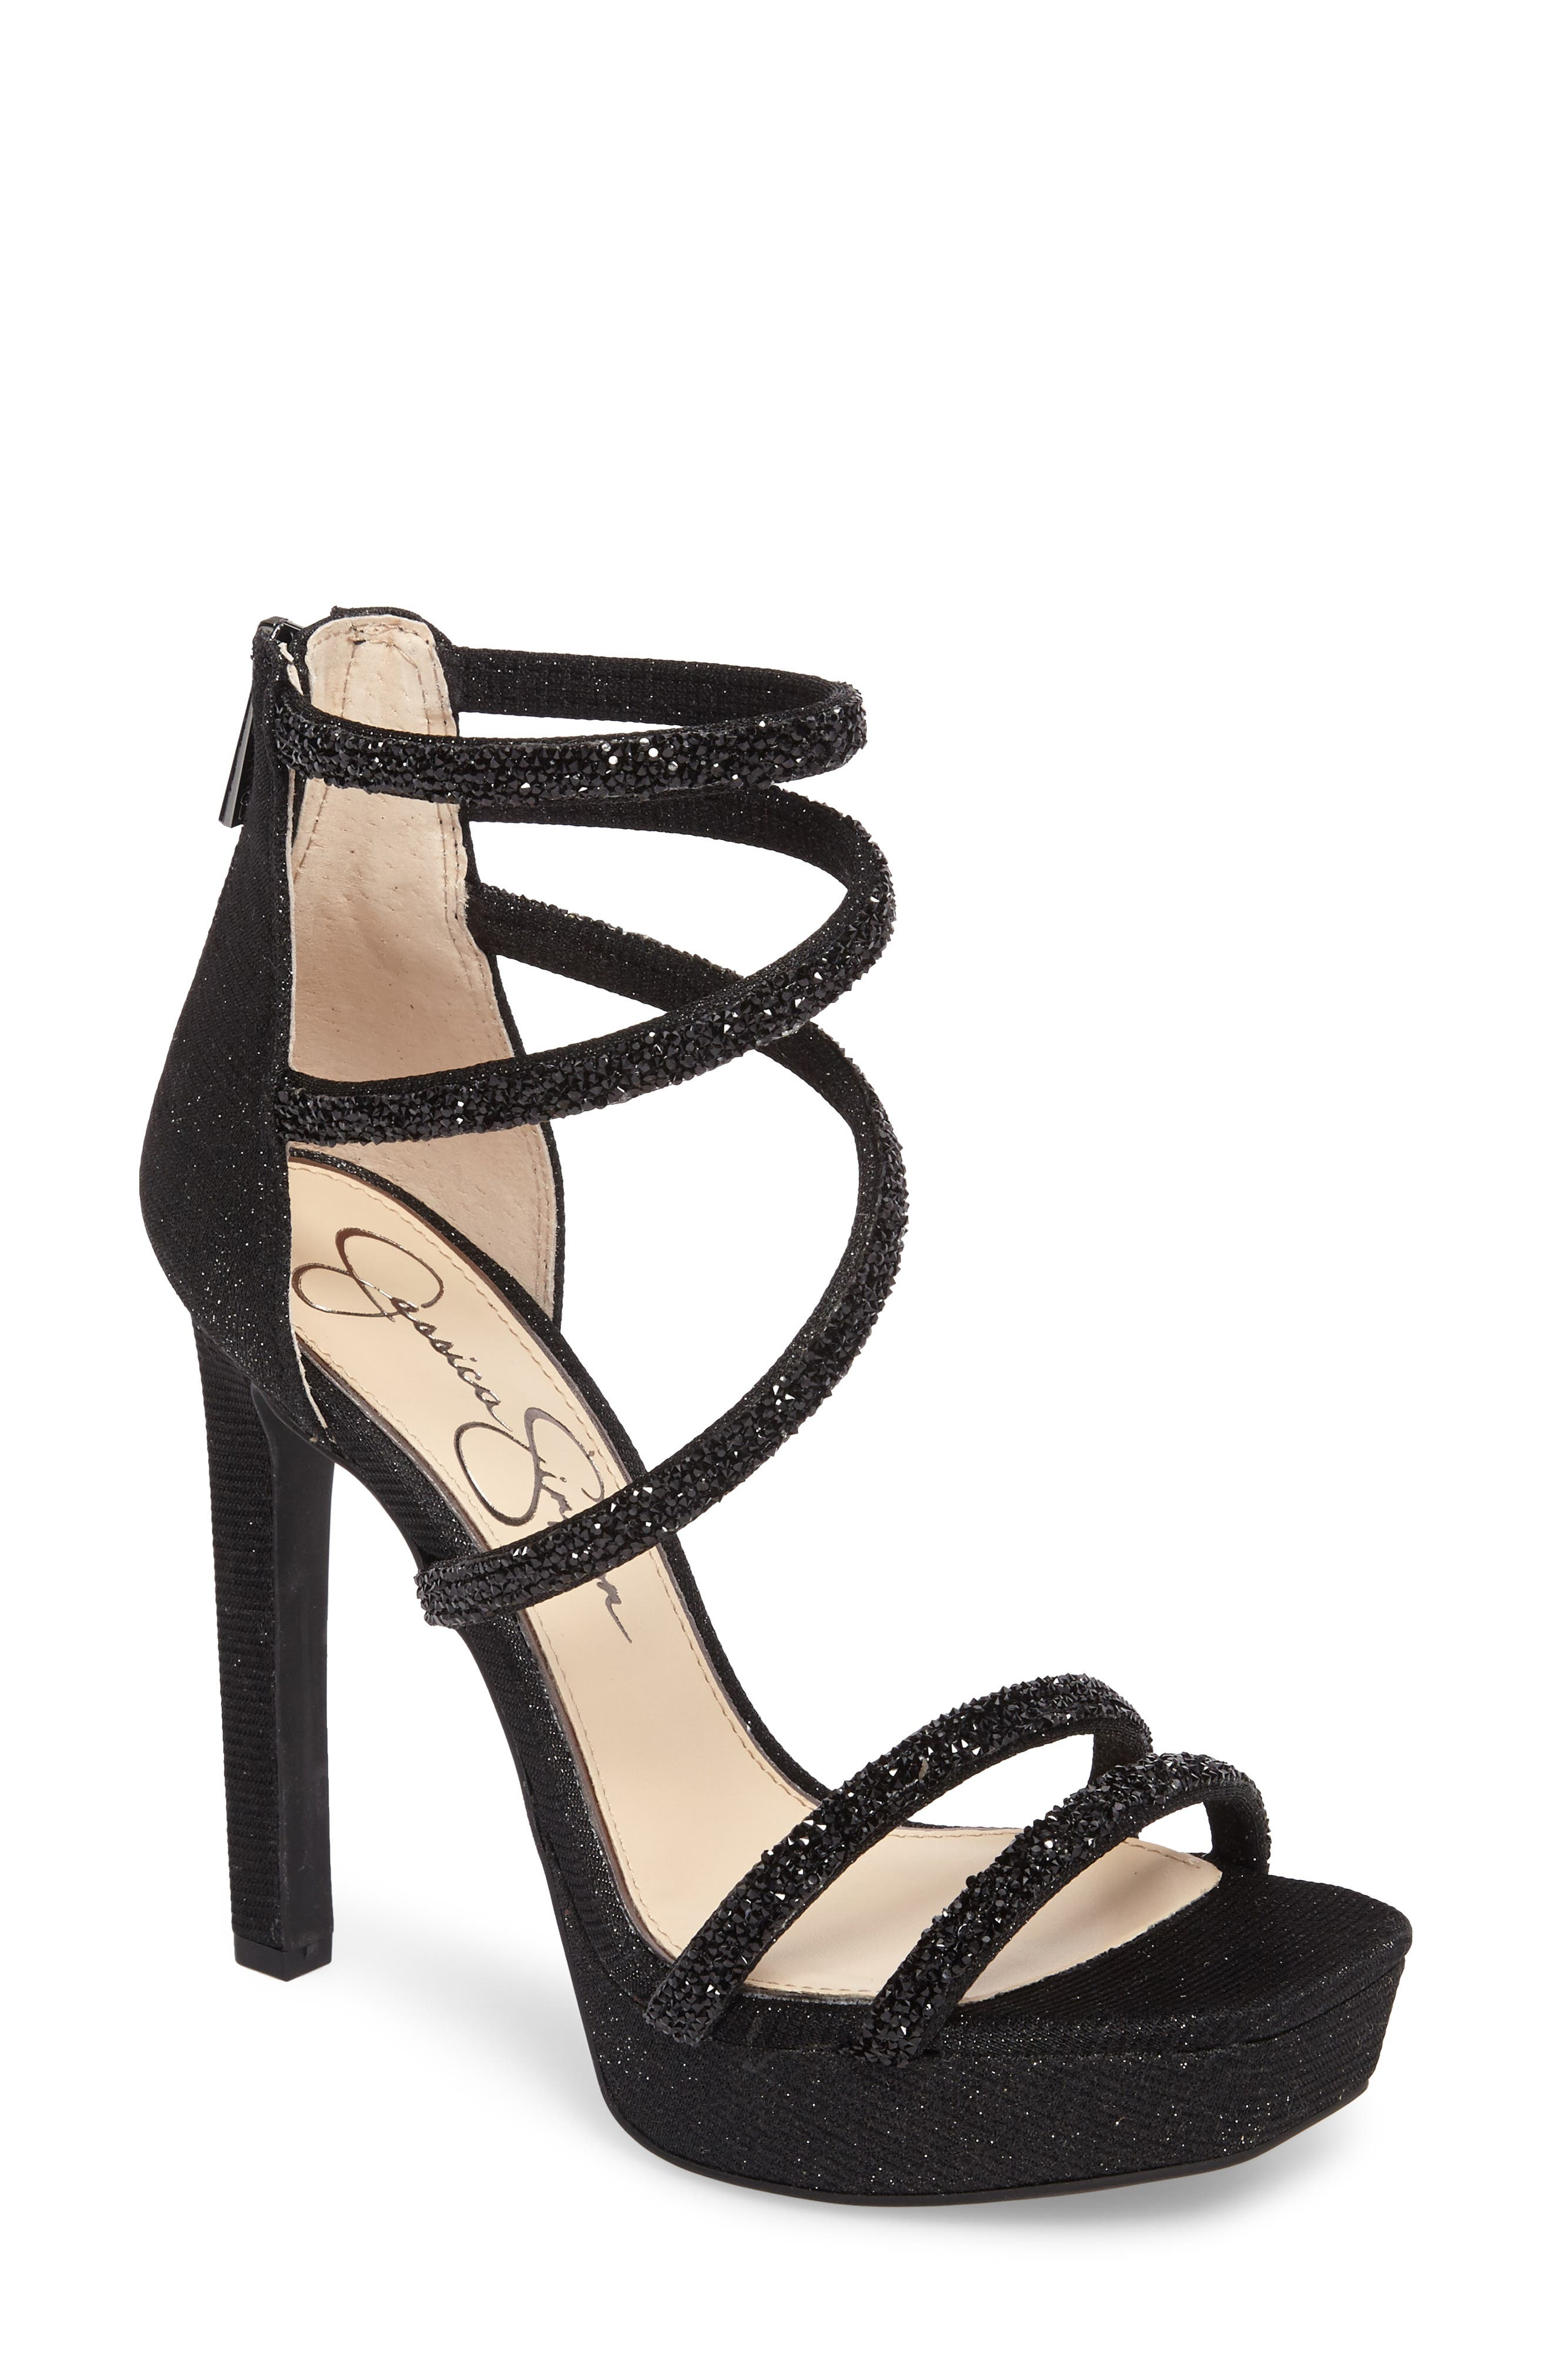 Jessica Beyonah Strappy Platform Sandal,                         Main,                         color, Black Fabric